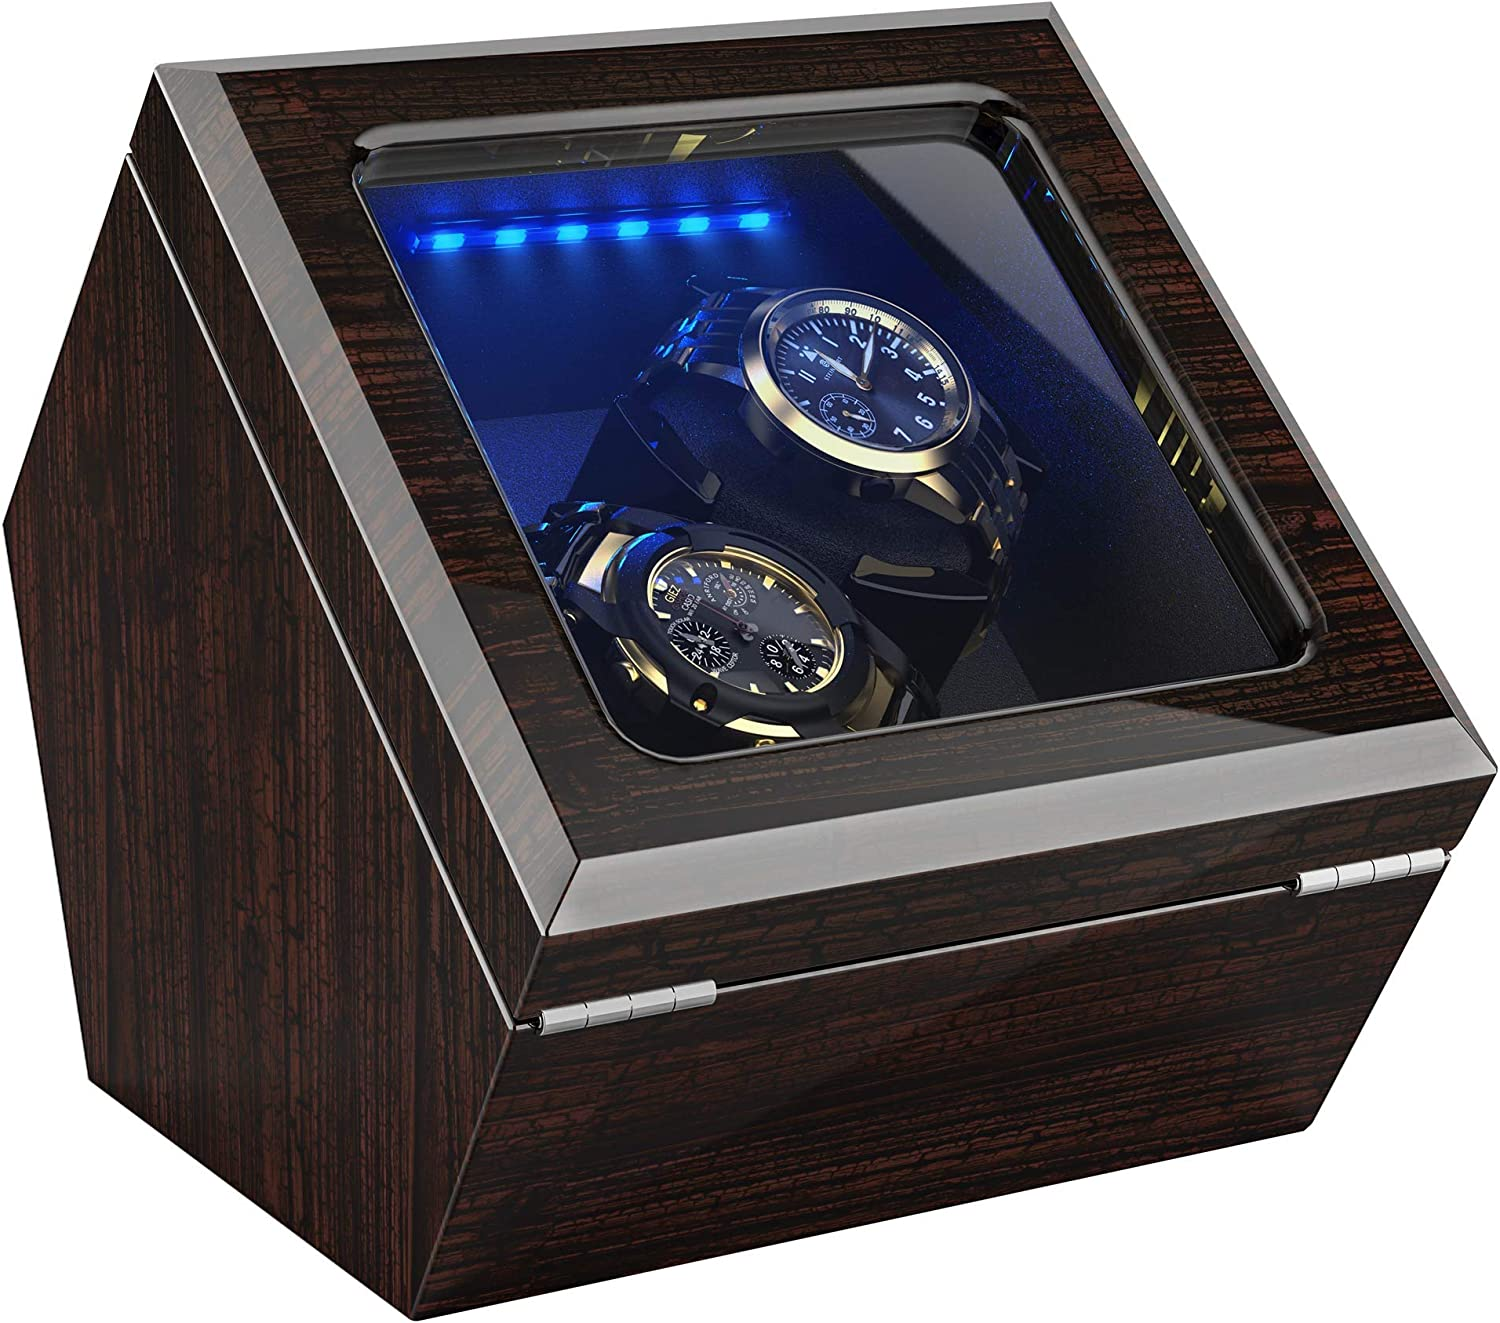 High End Double Watch Winder for Rolex with Soft Flexible Watch Pillows, Blue Led Light, Open and Shut Down Featured, Pine Bark Pattern, Two Extra Over Size Watch Pillows Included (Pine BARK Pattern): Watches